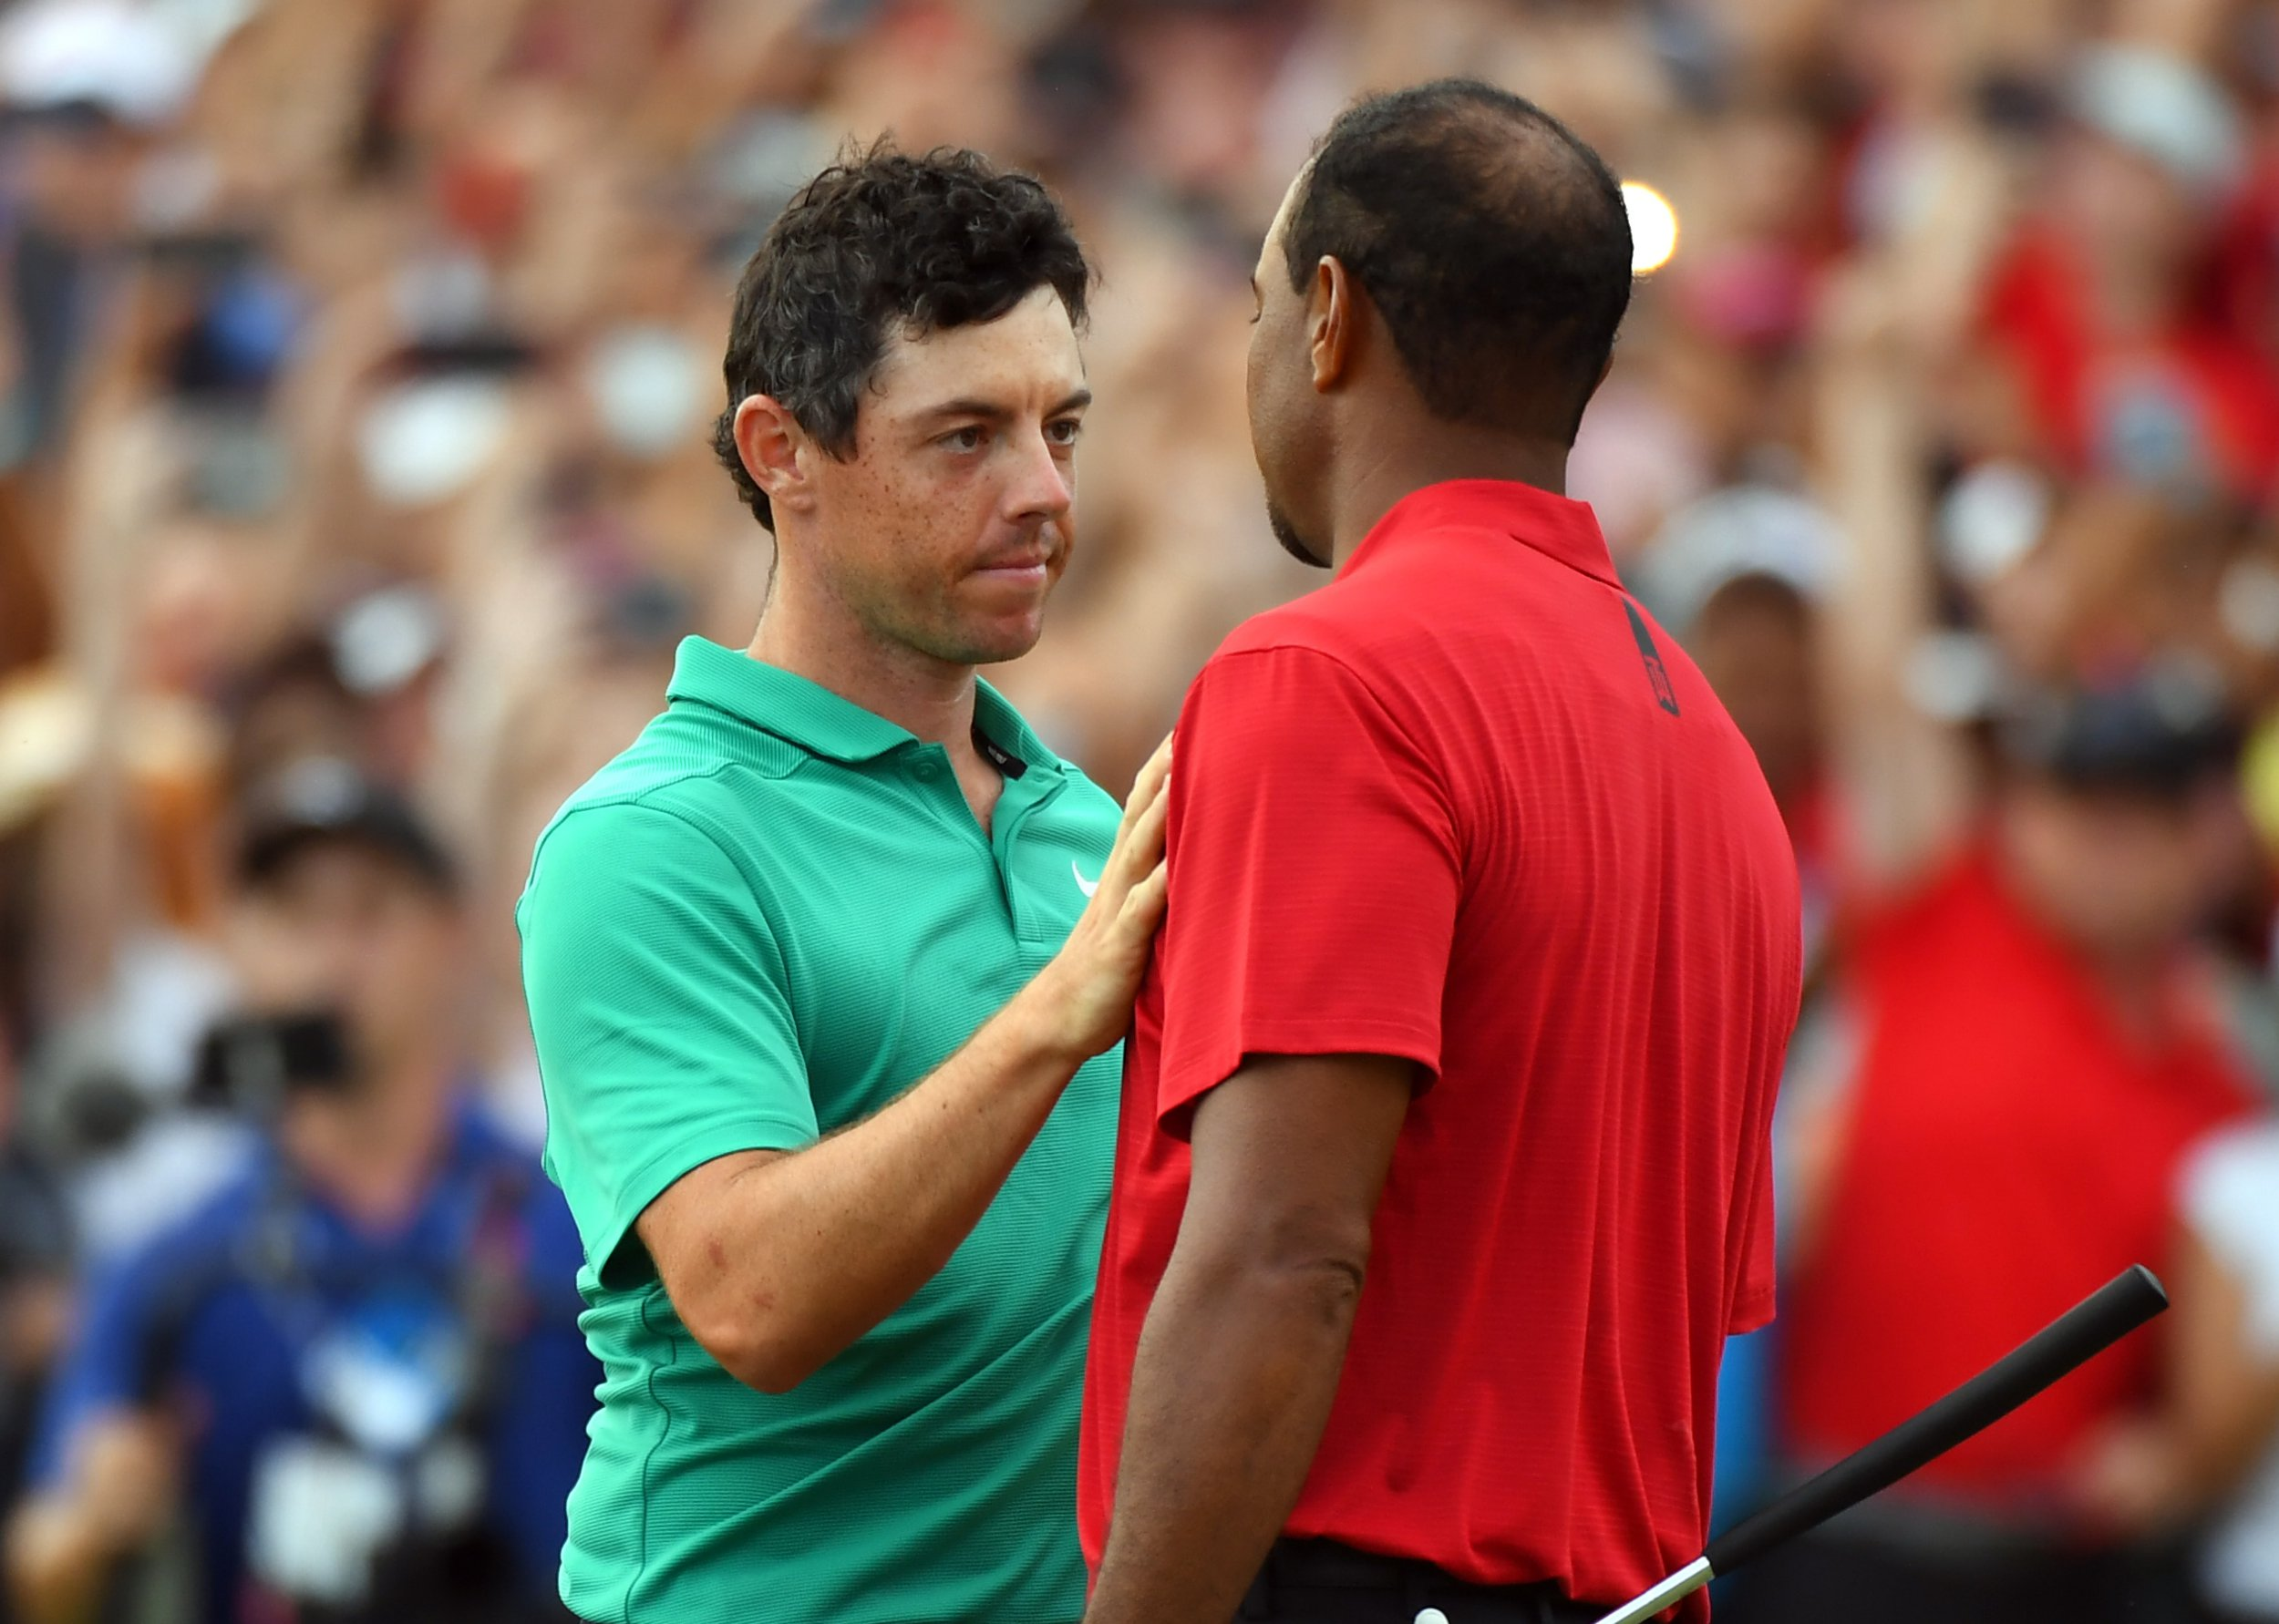 SIPA USA via PA Images Sep 23, 2018; Atlanta, GA, USA; Tiger Woods shakes hands with Rory McIlroy after winning the Tour Championship golf tournament at East Lake Golf Club. Mandatory Credit: Christopher Hanewinckel-USA TODAY Sports/Sipa USA